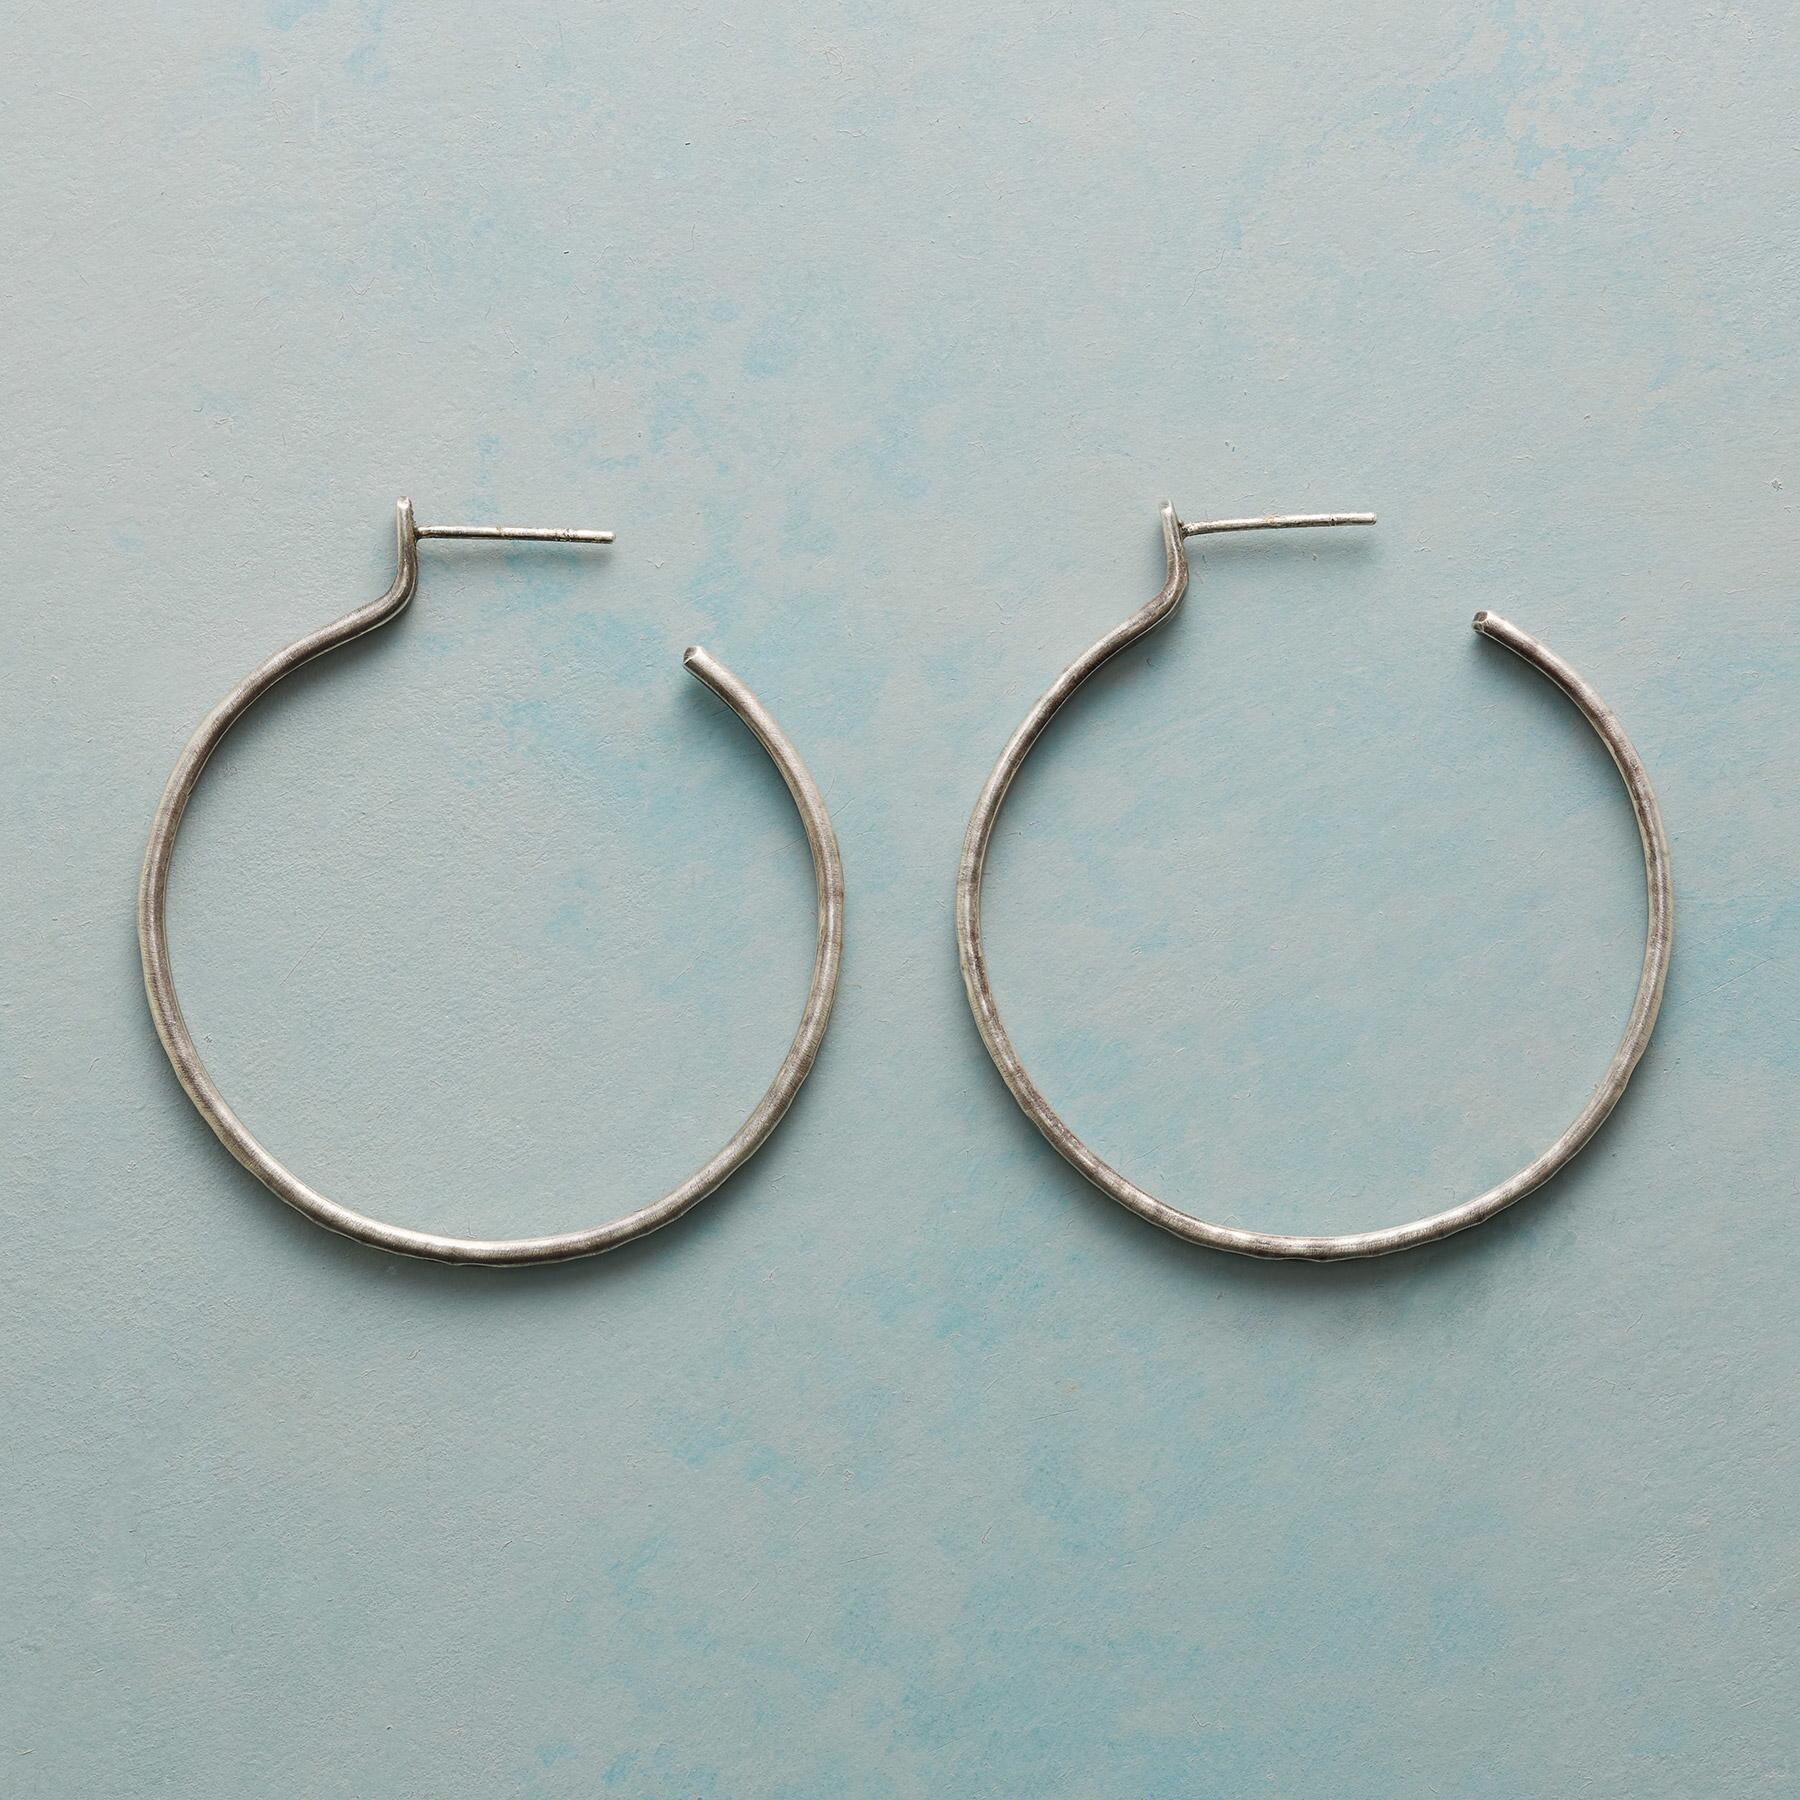 RUSTICO STERLING HOOP EARRINGS: View 1